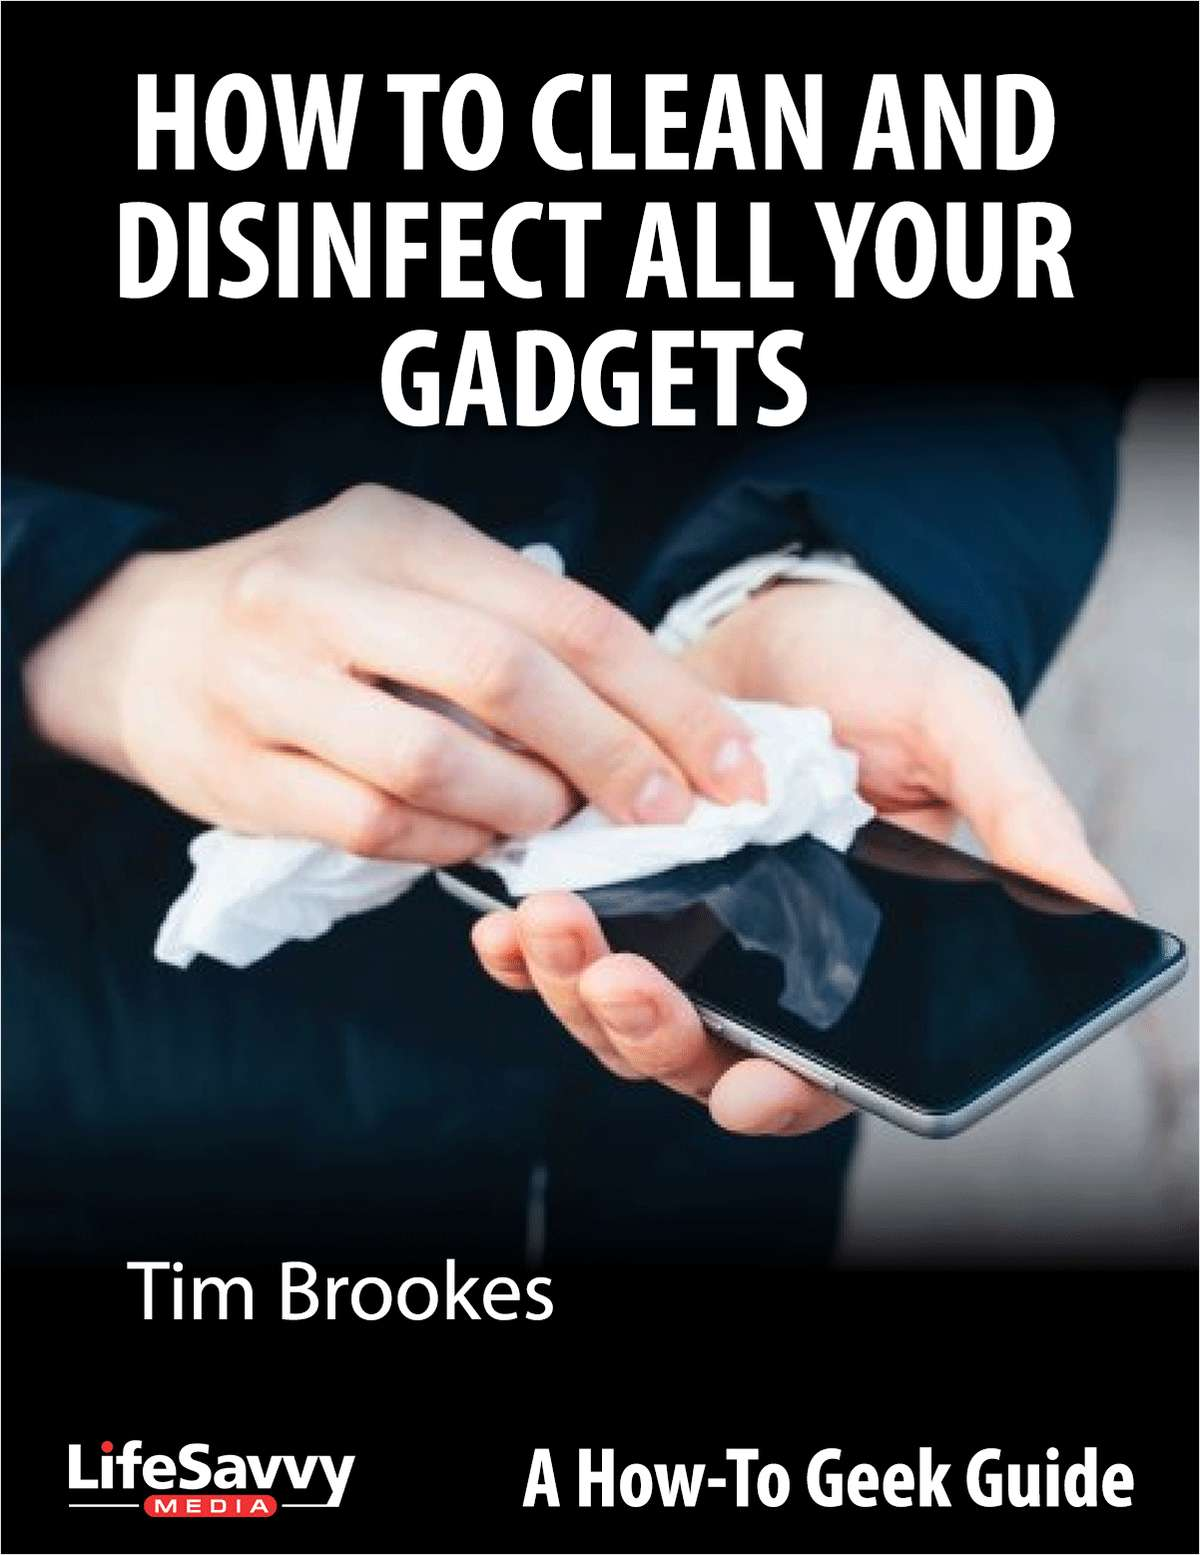 How to Clean and Disinfect Gadgets ebook guide by How-To-Geek